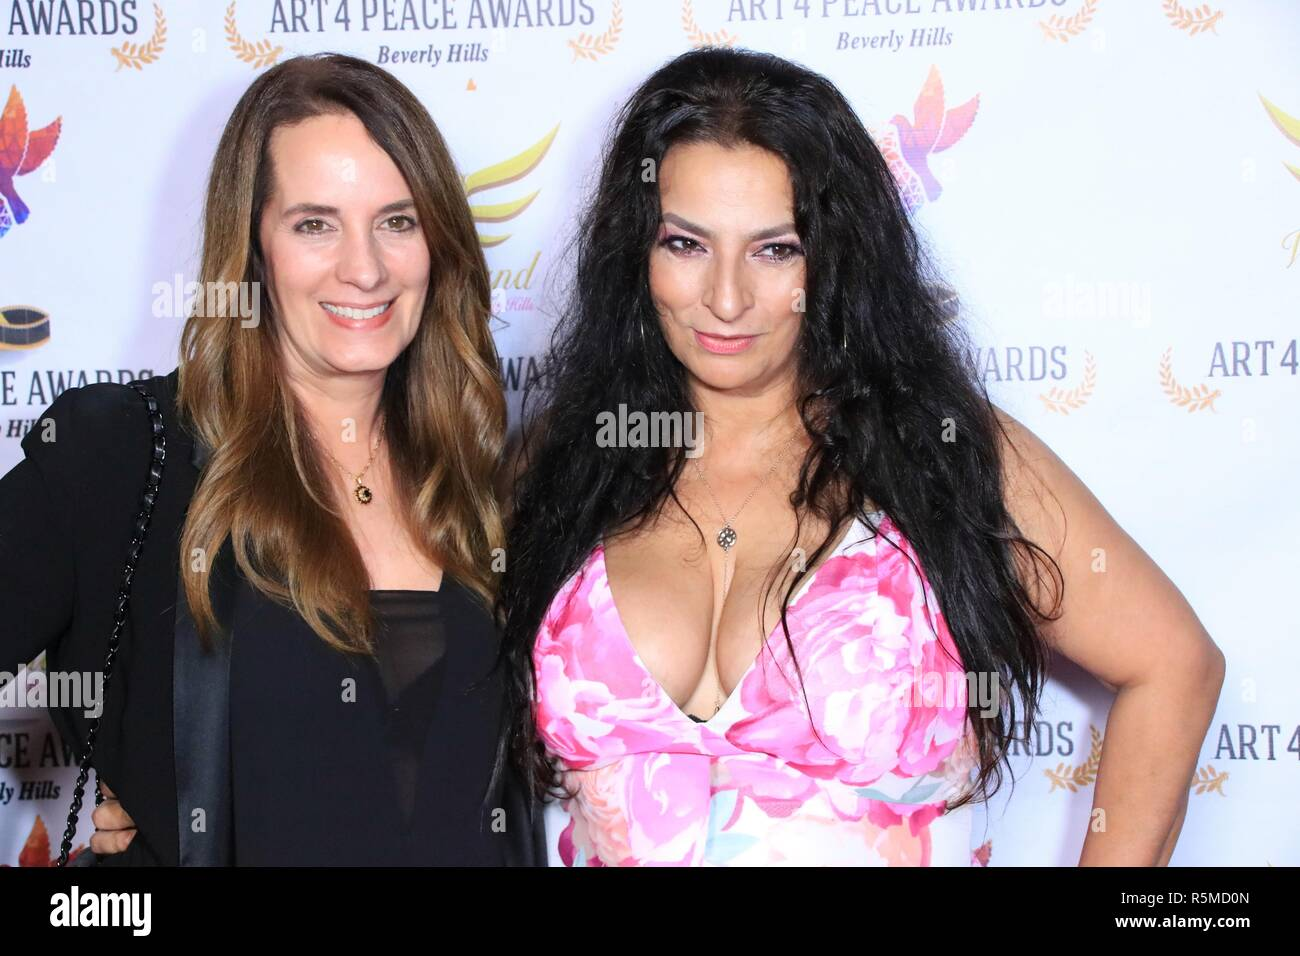 Alice Amter Big Bang Theory High Resolution Stock Photography And Images Alamy Trouvez les alice amter images et les photos d'actualités parfaites sur getty images. https www alamy com alice amter receives the outstanding supporting actress in a comedy series award for cbs the big bang theory at the 3rd annual art 4 peace awards in los angeles featuring alice amter lisa haisha where beverly hills california united states when 29 oct 2018 credit wenncom image227257317 html